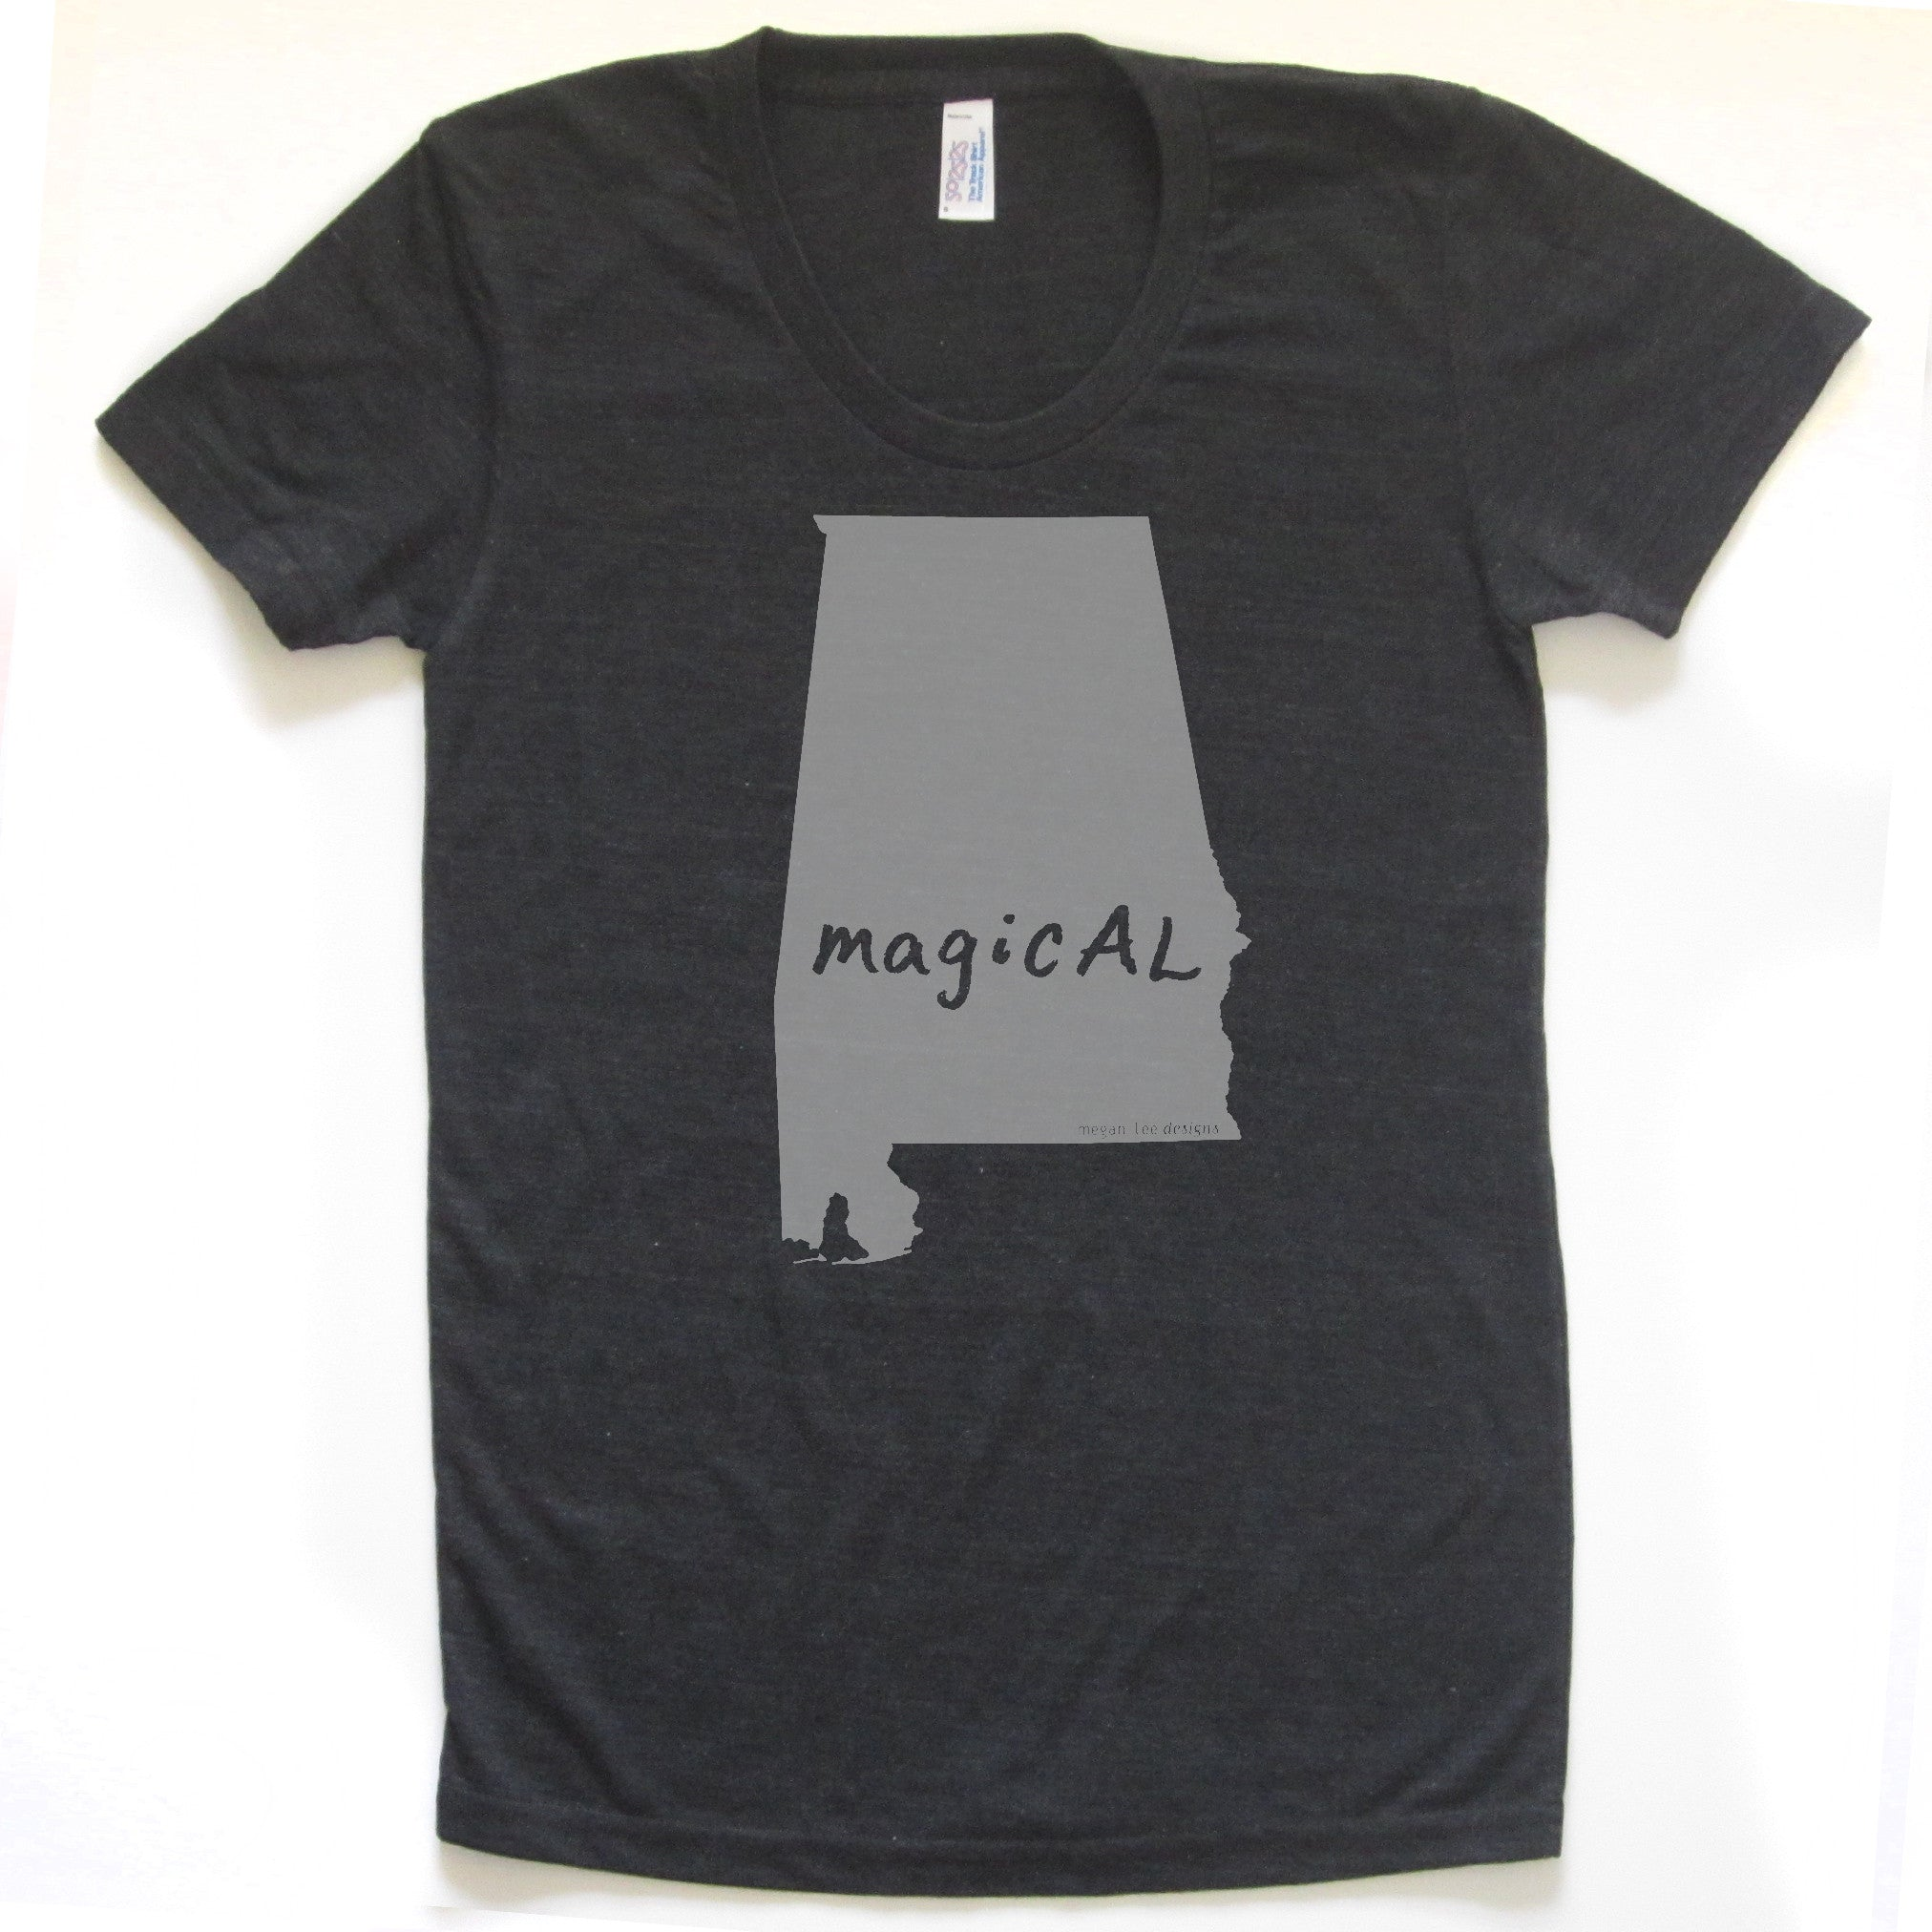 SALE Alabama : magicAL women tri-blend tee - Megan Lee Designs